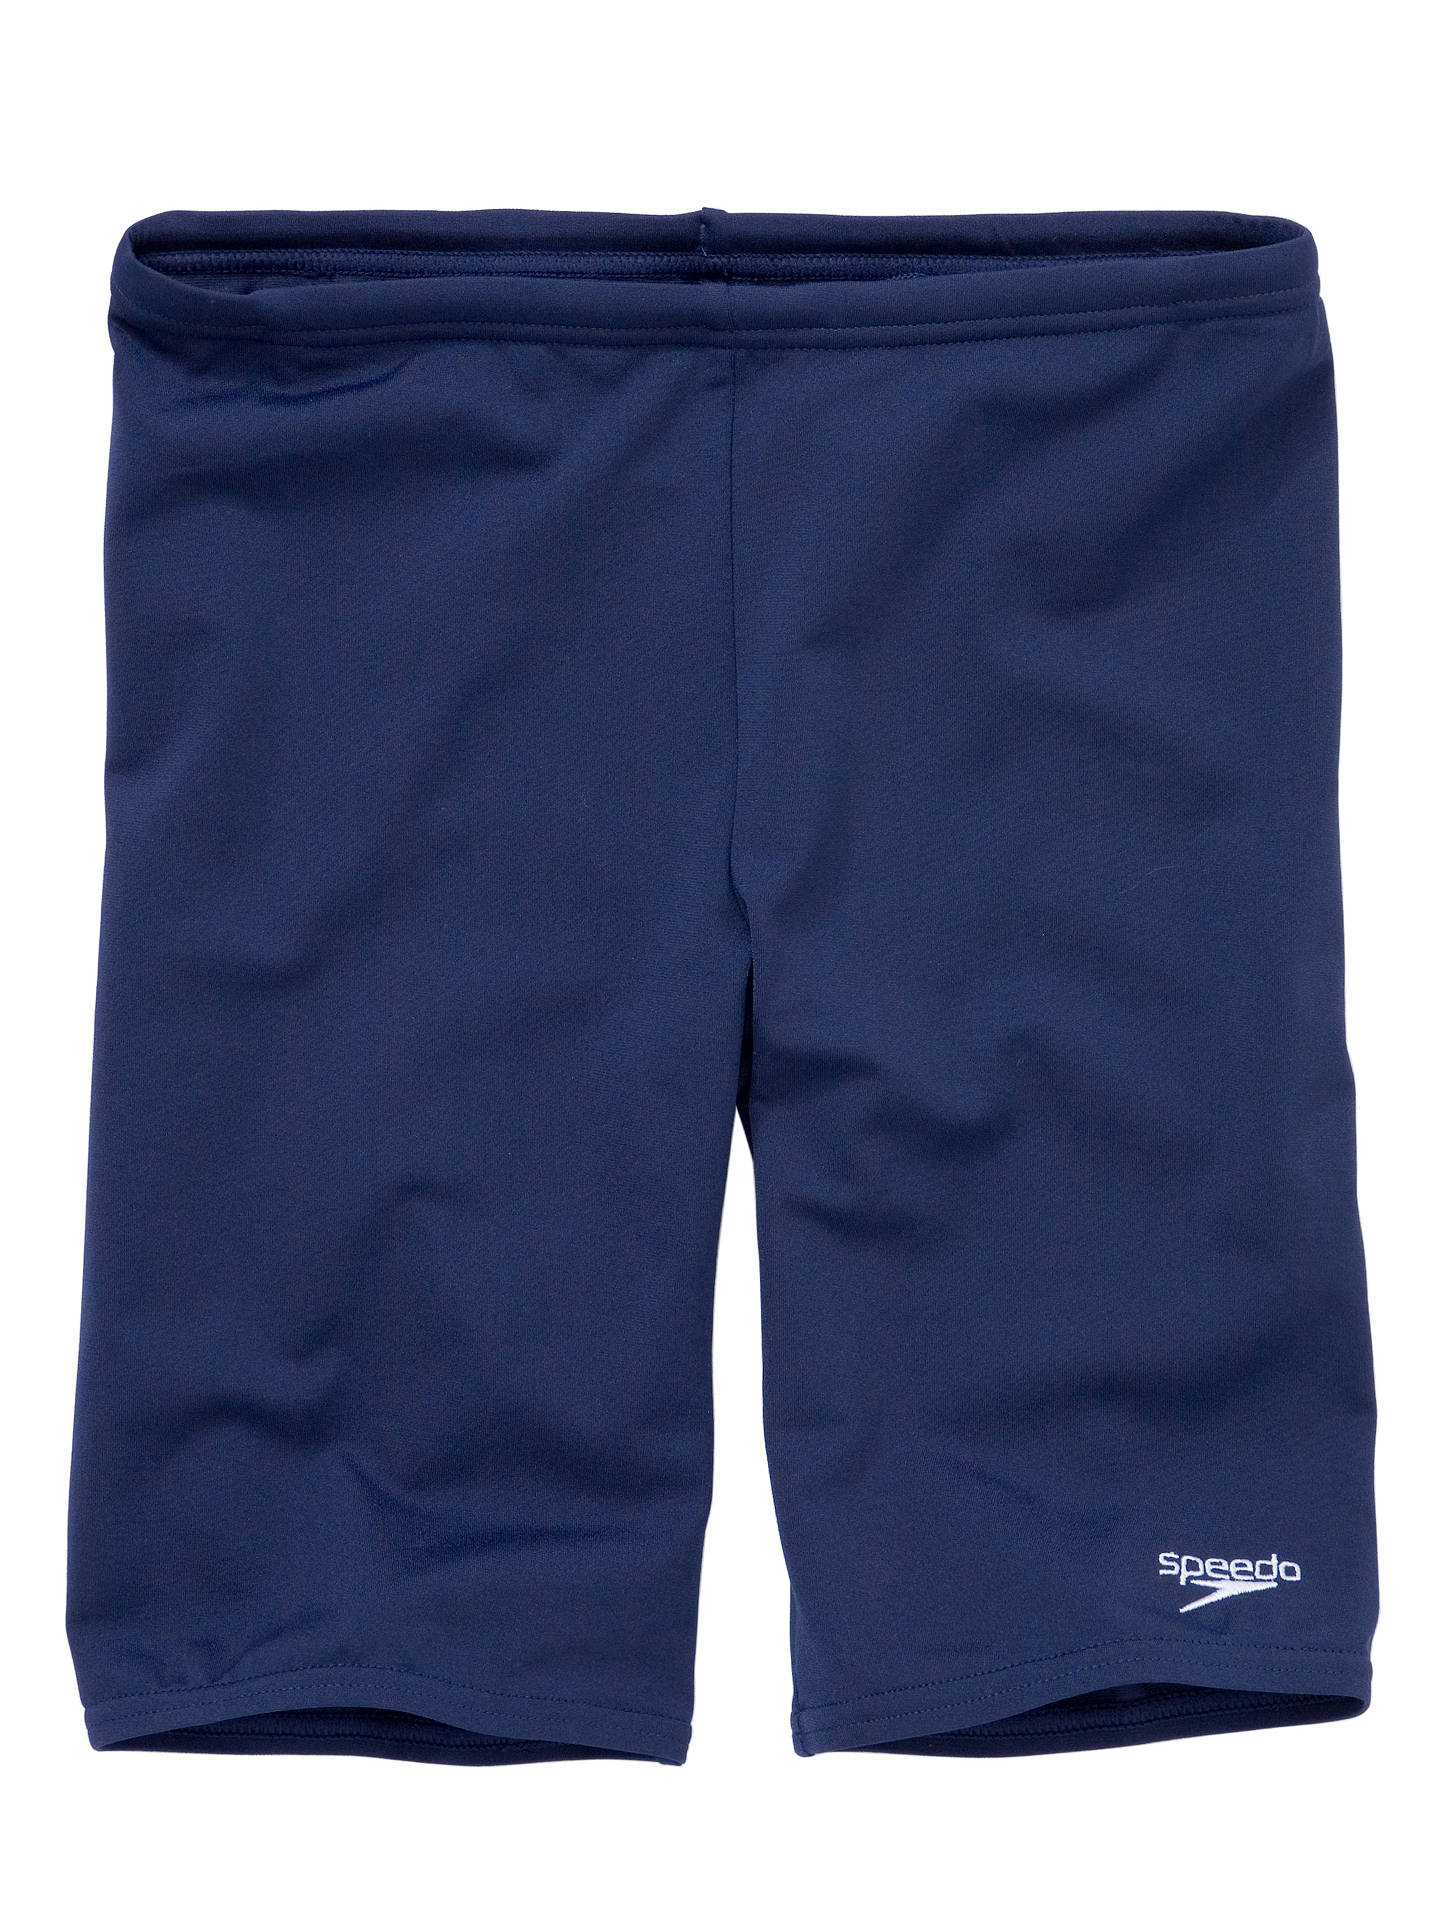 c610a185ee Buy Speedo Boys' Jammers Swimming Shorts, Navy, Waist 22